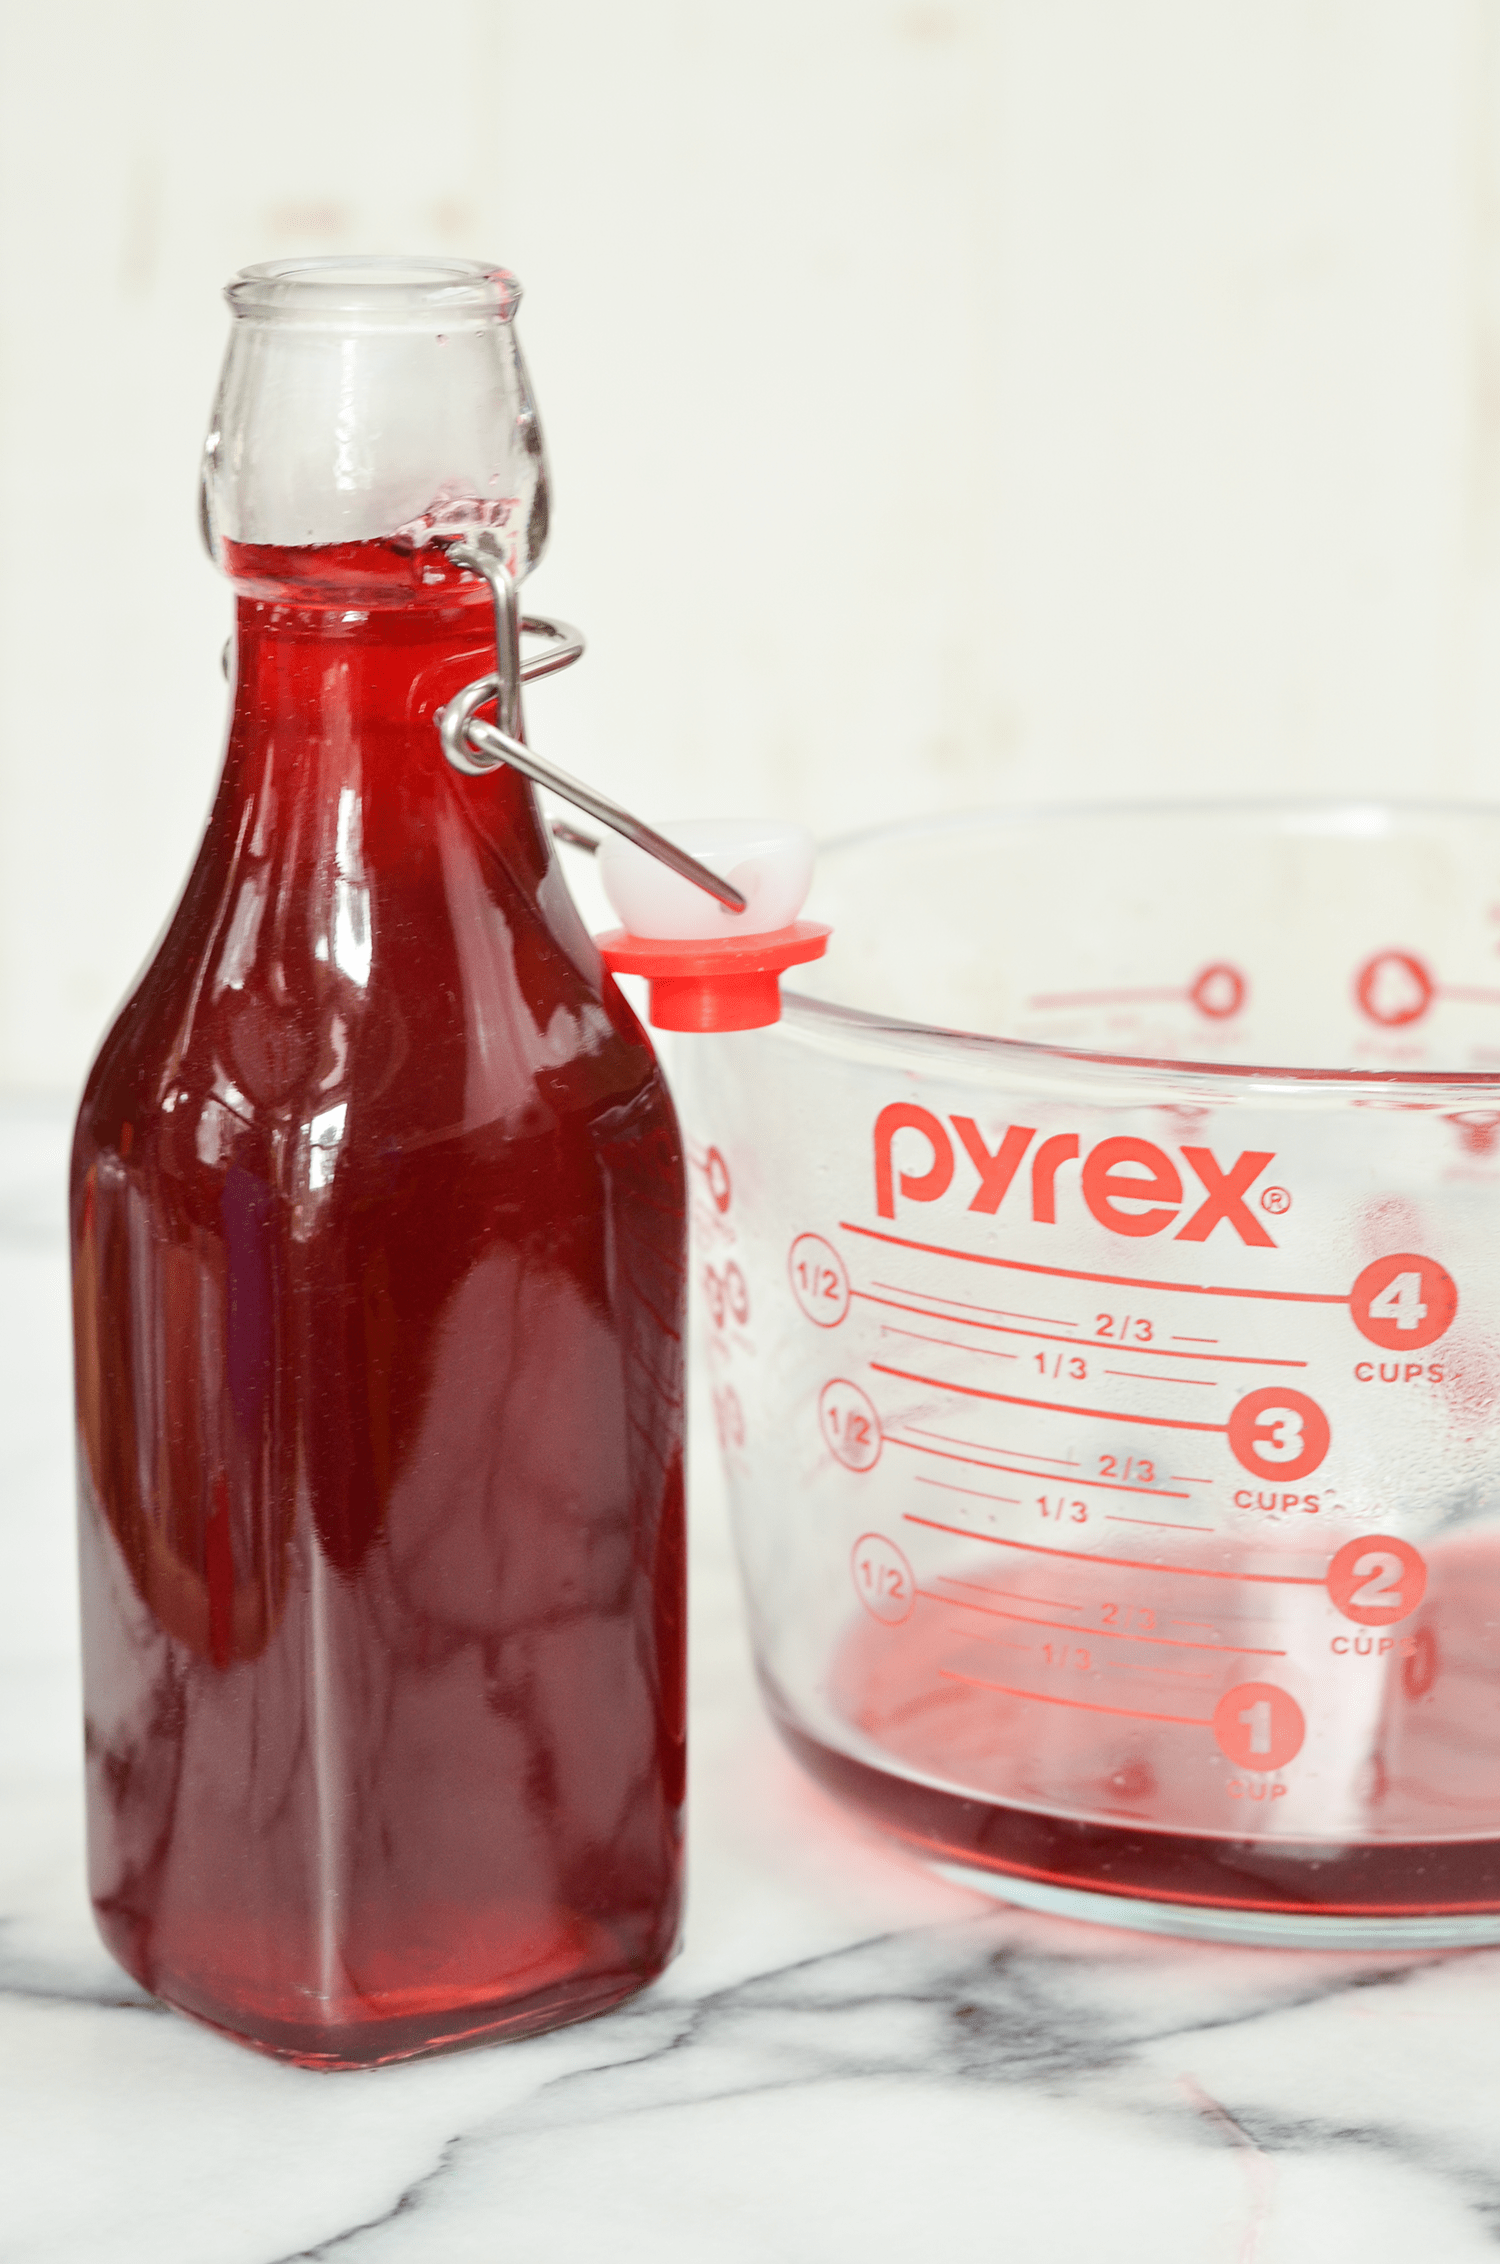 Make Your Own Flavored Simple Syrups - Four Ways! (Click through for recipe)